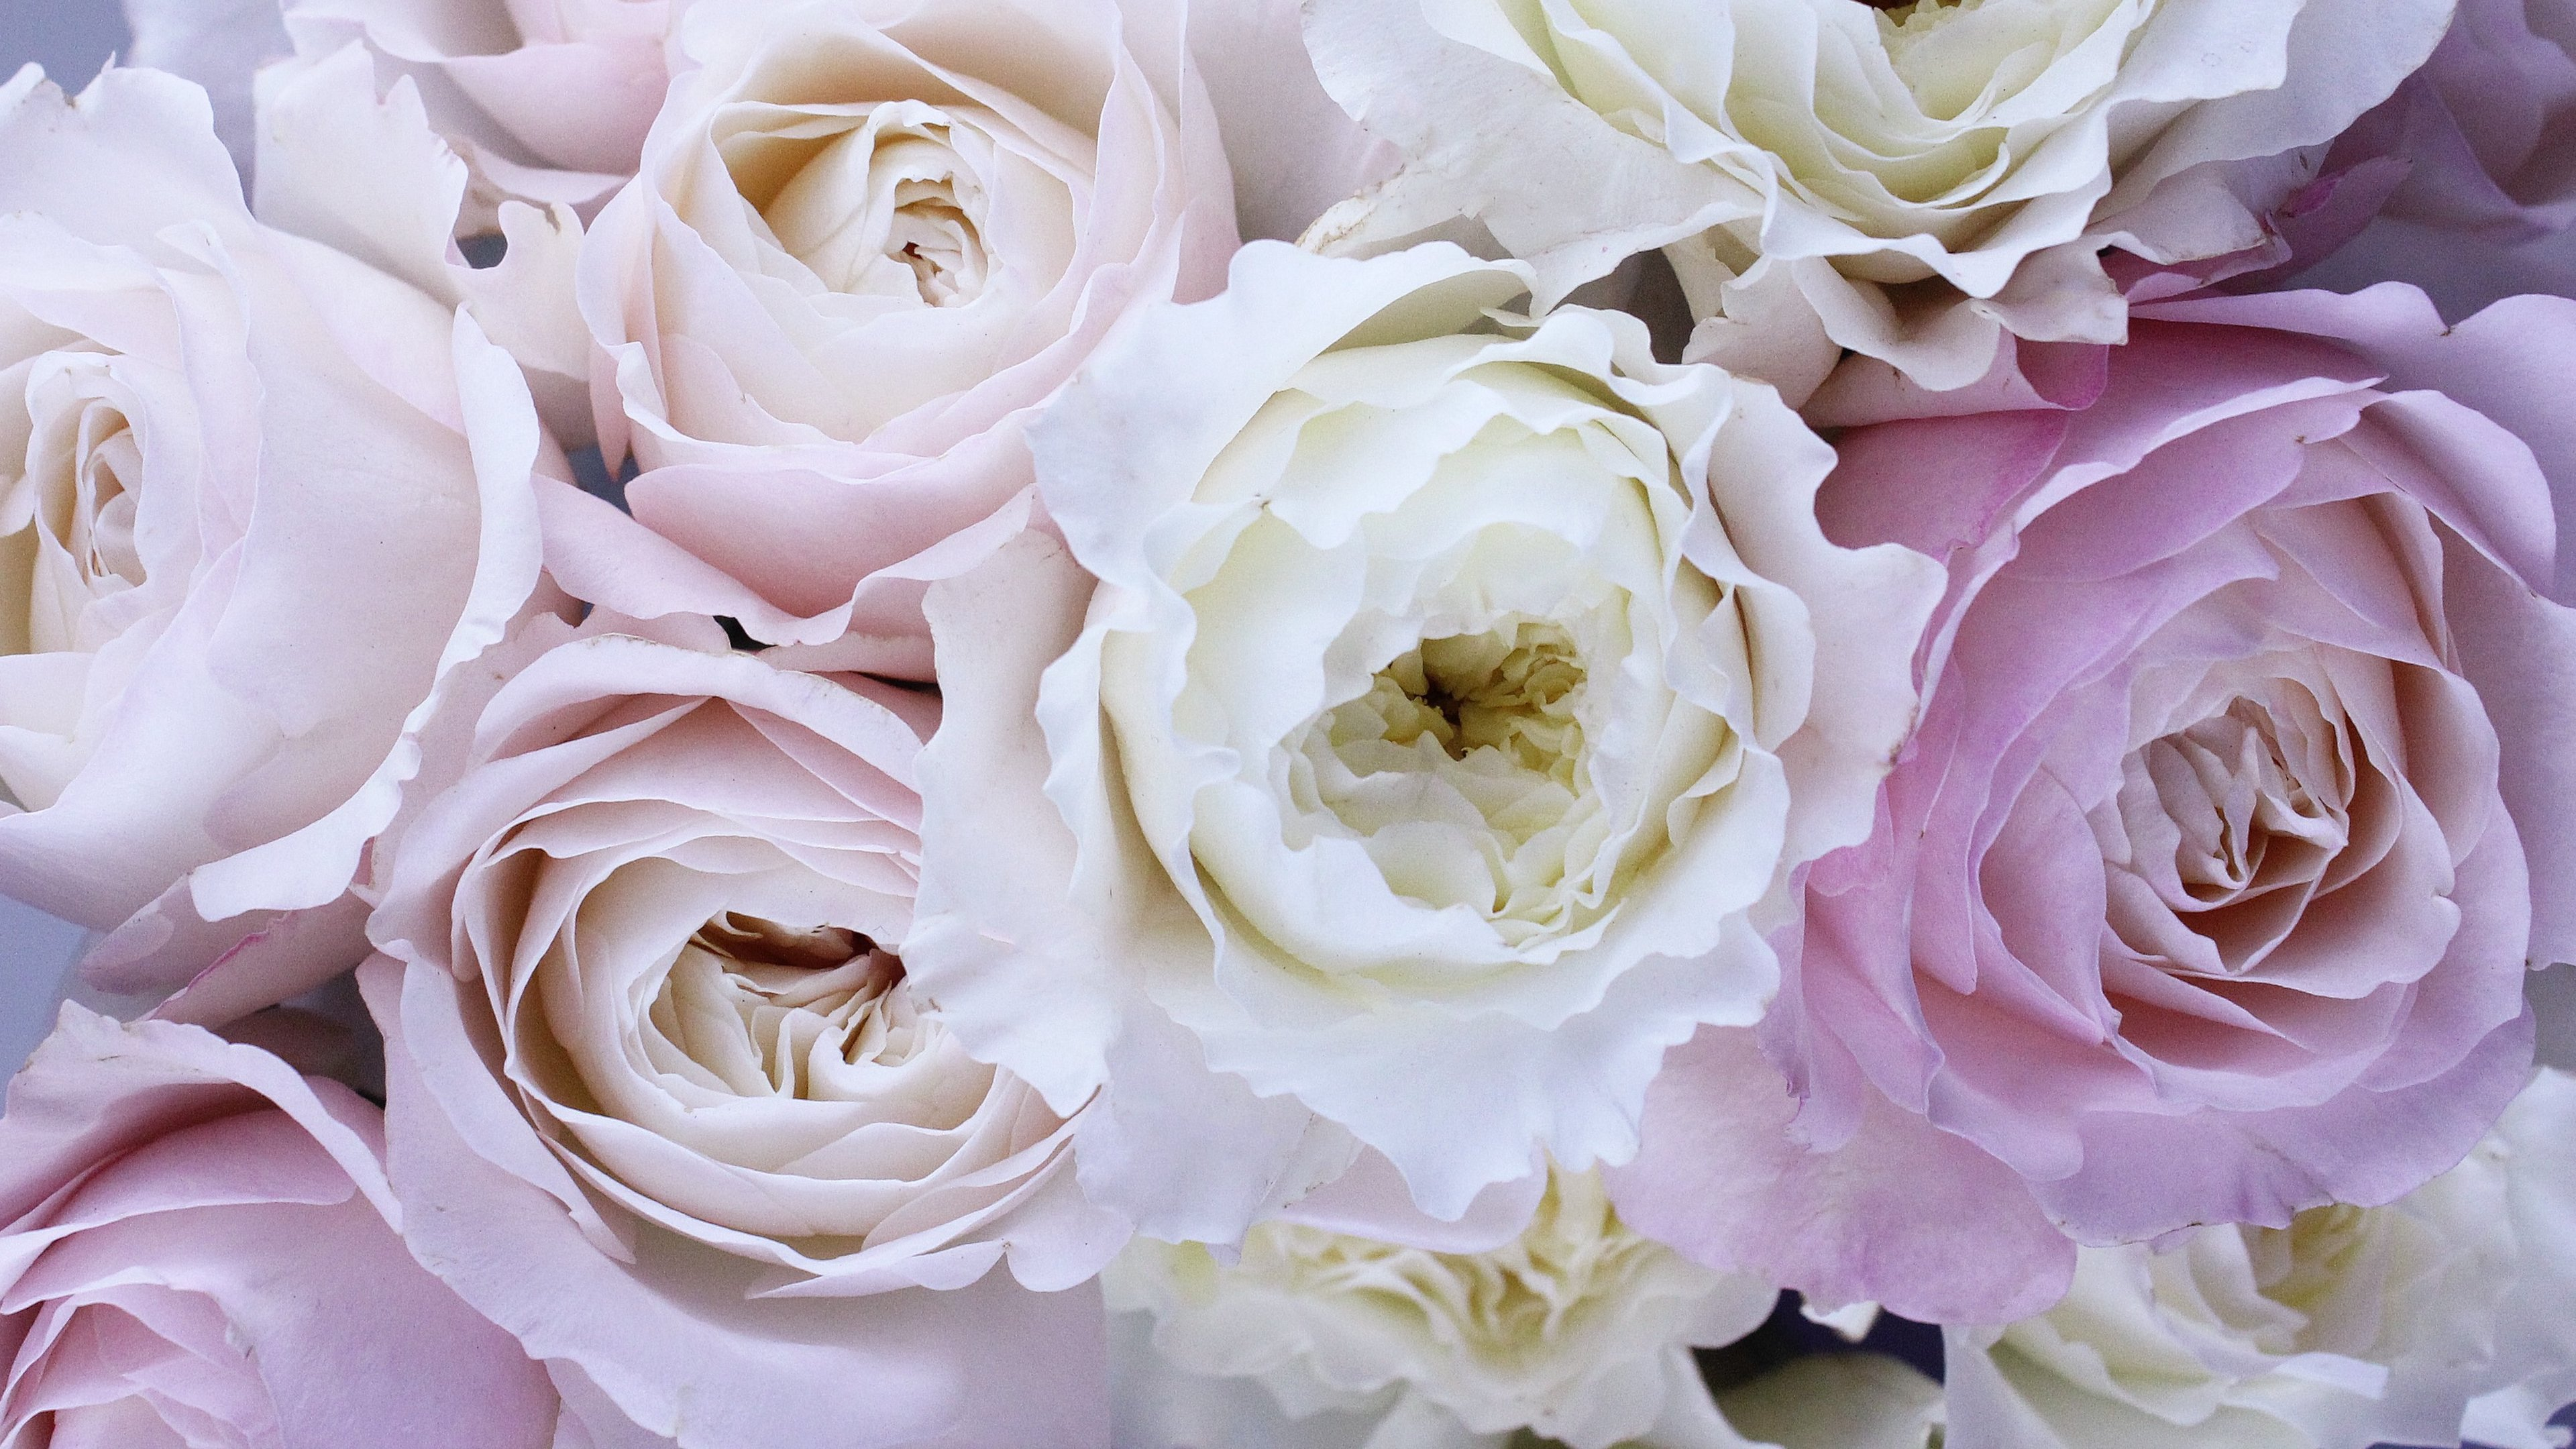 Light Purple and White Roses 4k Ultra HD Wallpaper | Background ...